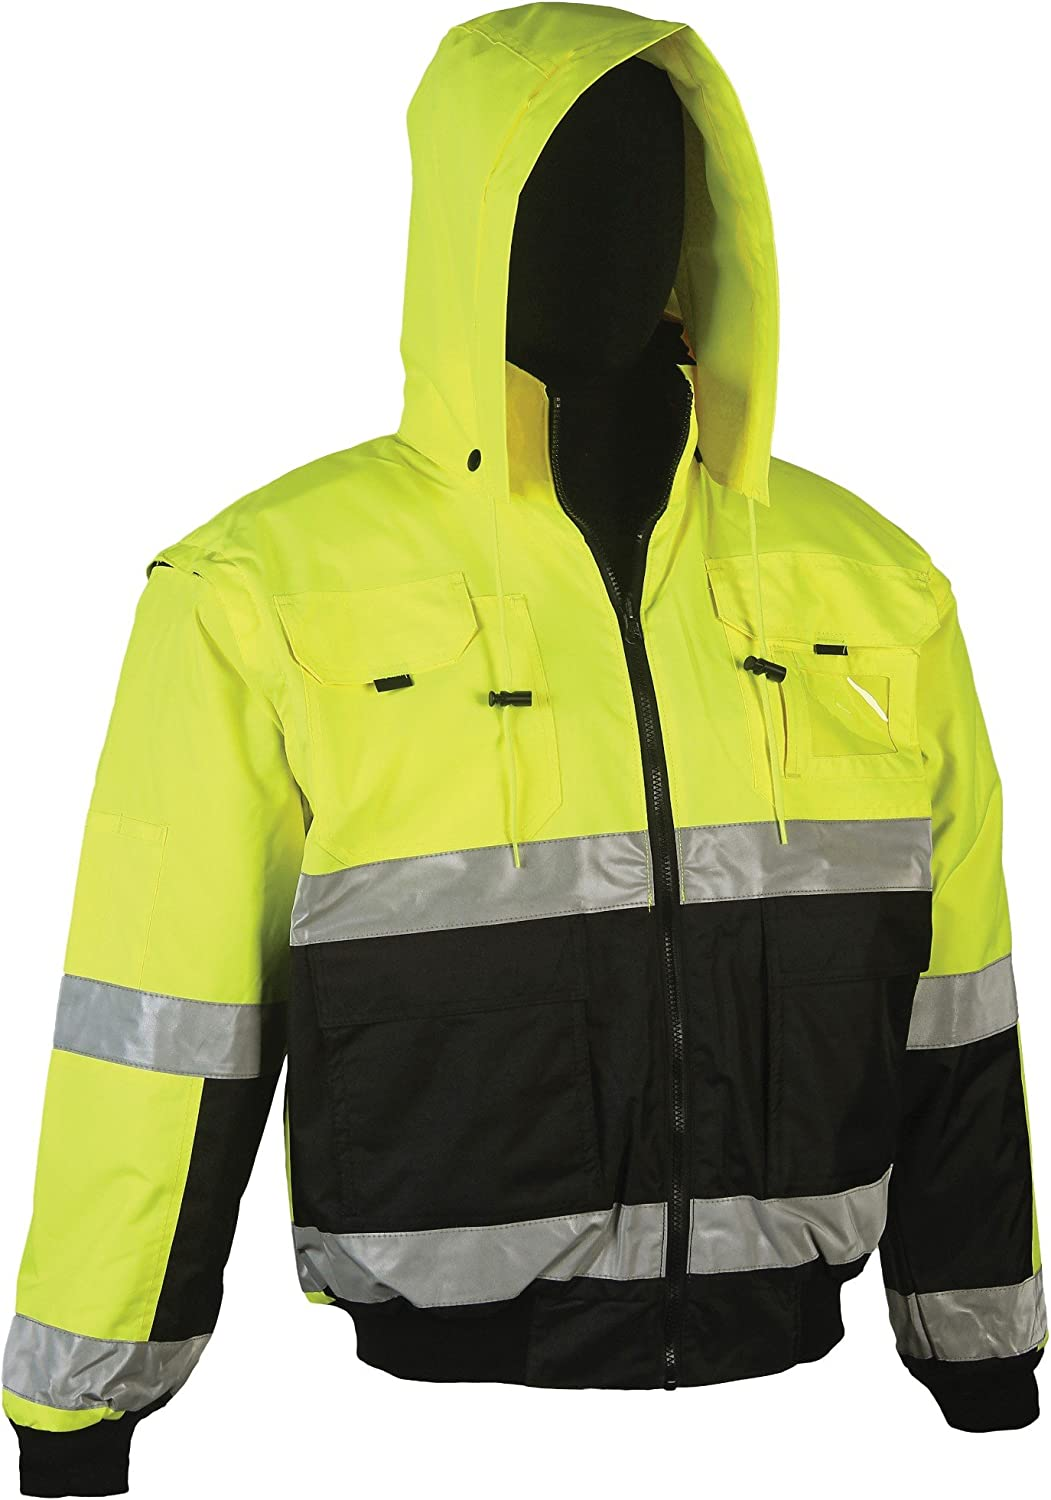 Reversible Safety Jackets For Men or Women Brite Safety Style 5025 Hi Vis Hoodie Bomber Jacket Waterproof 2XL, Hi Vis Orange ANSI Class 3 Compliant Breathable : 2-Tone